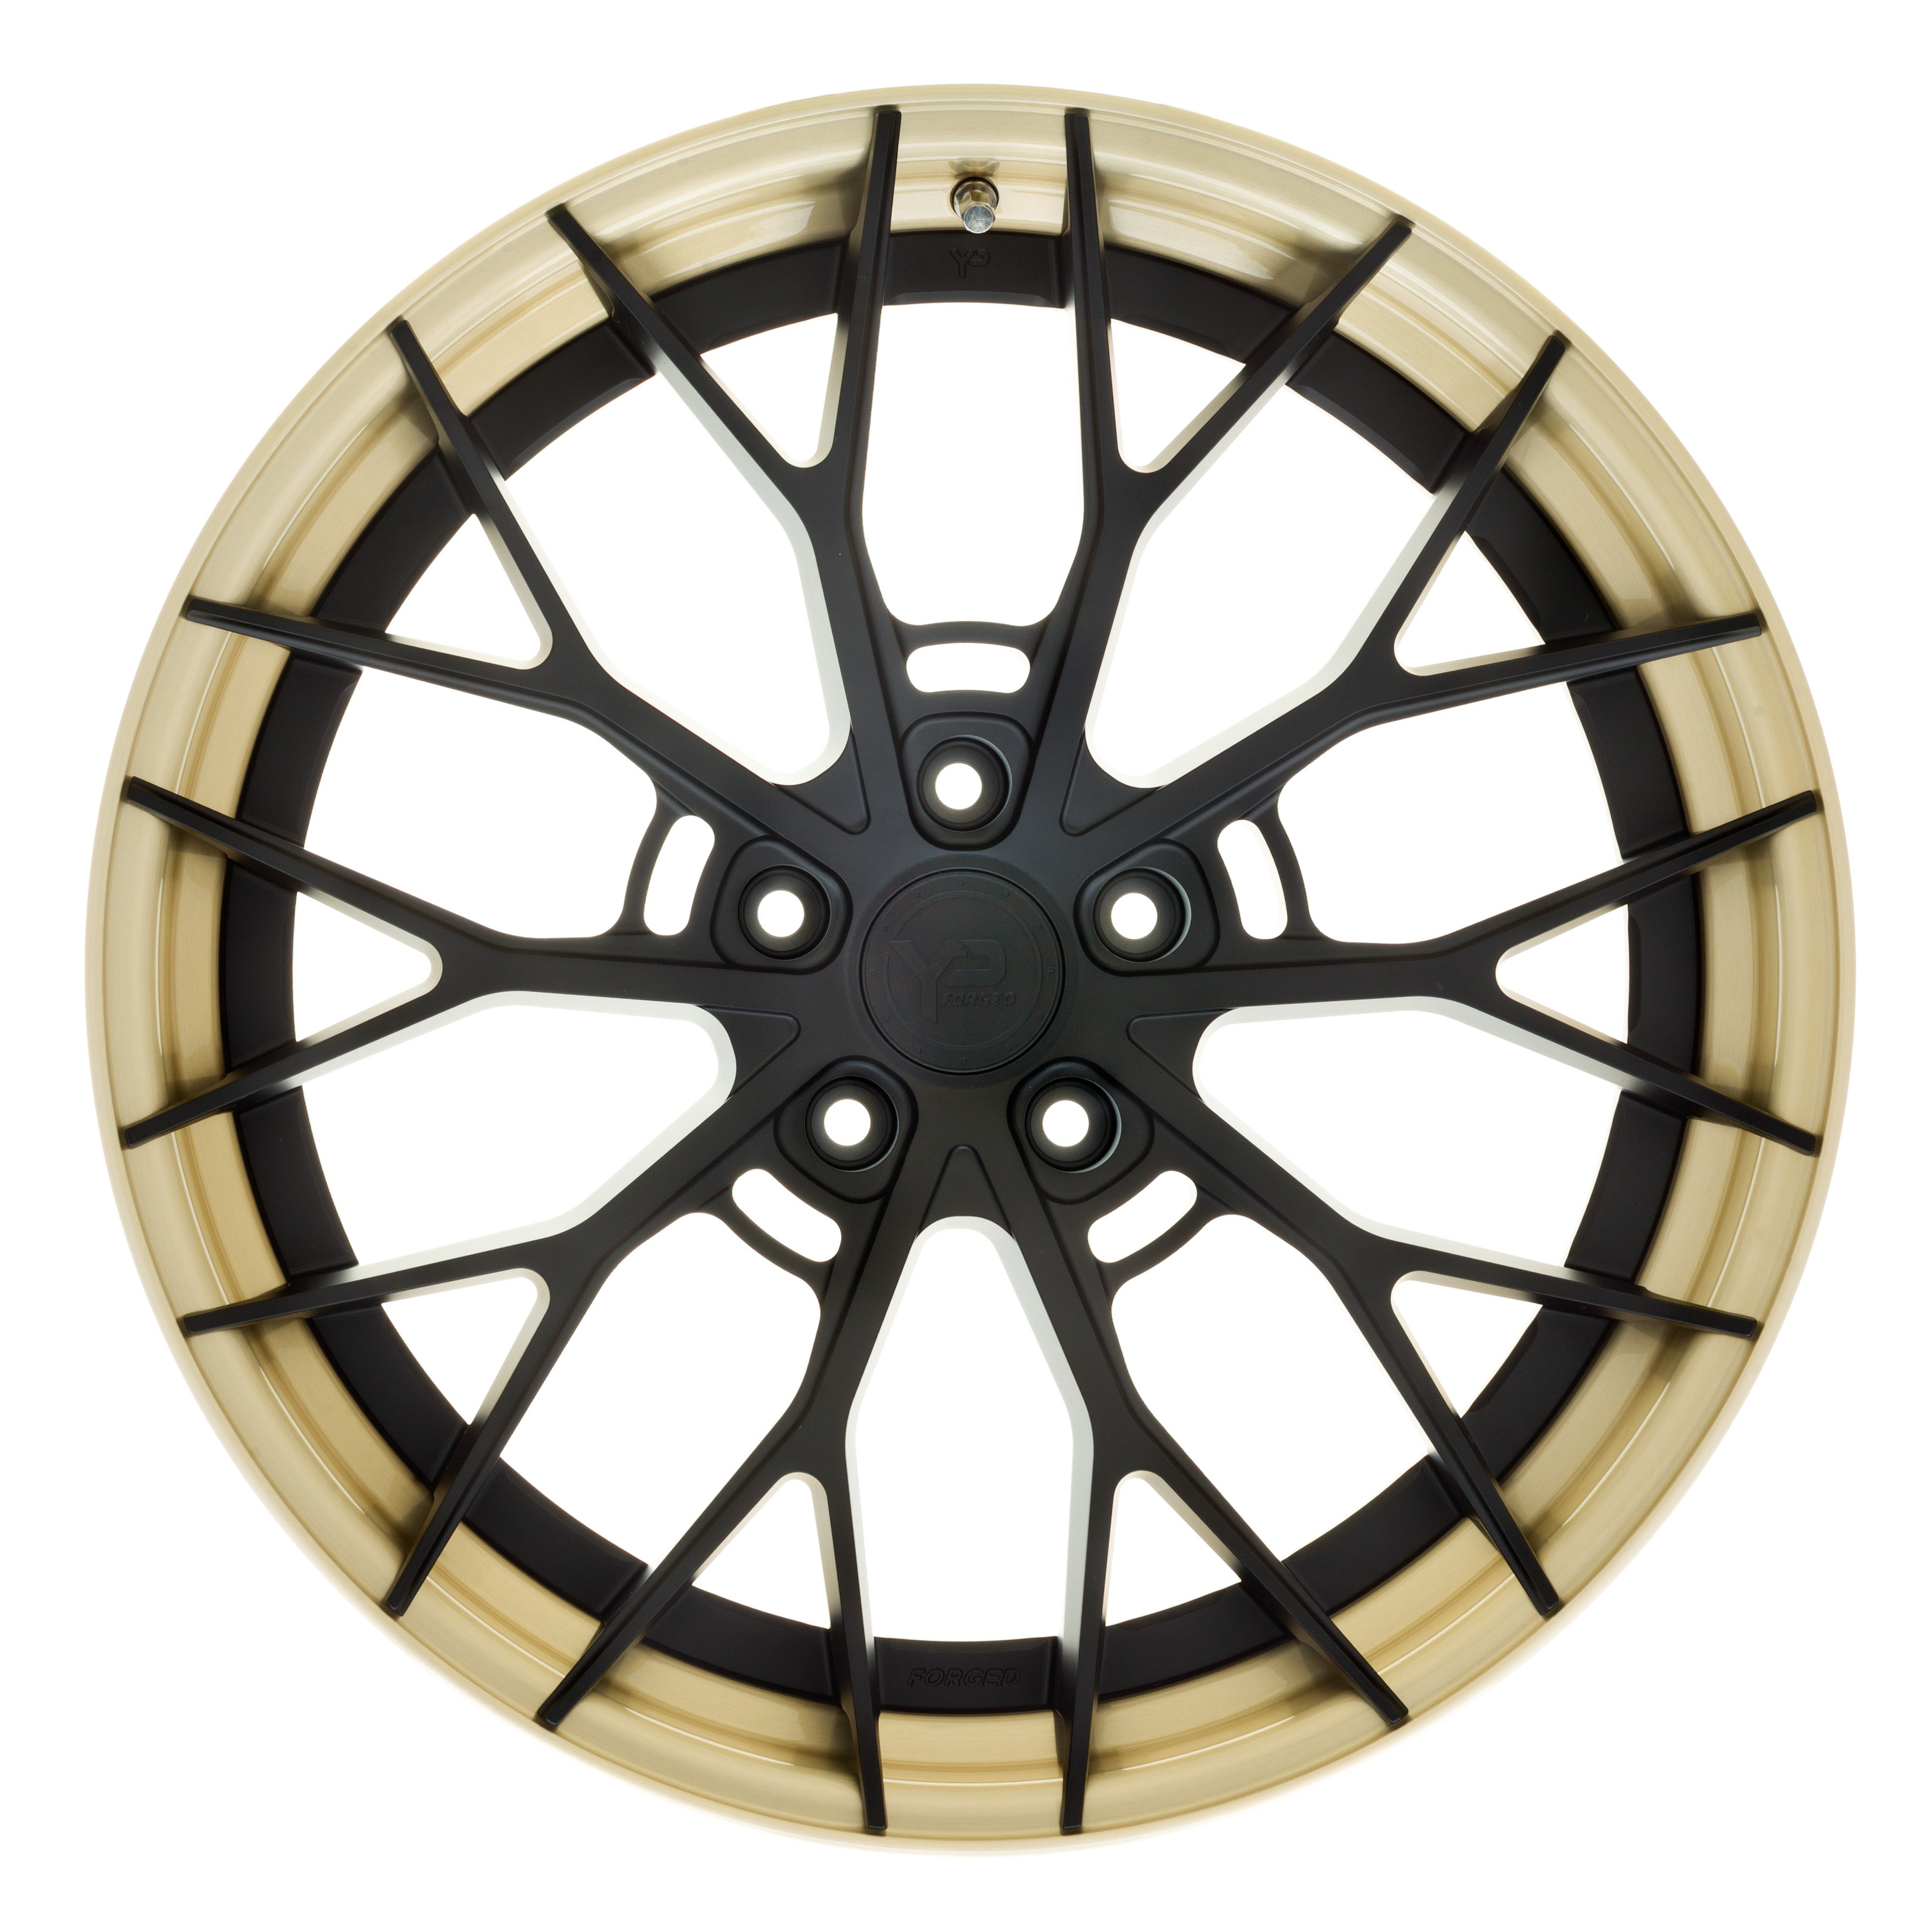 YIDO PERFORMANCE WHEELS | YP 8.2 FORGED | MATTE BLACK/BRUSHED GOLD - Boden Visuals